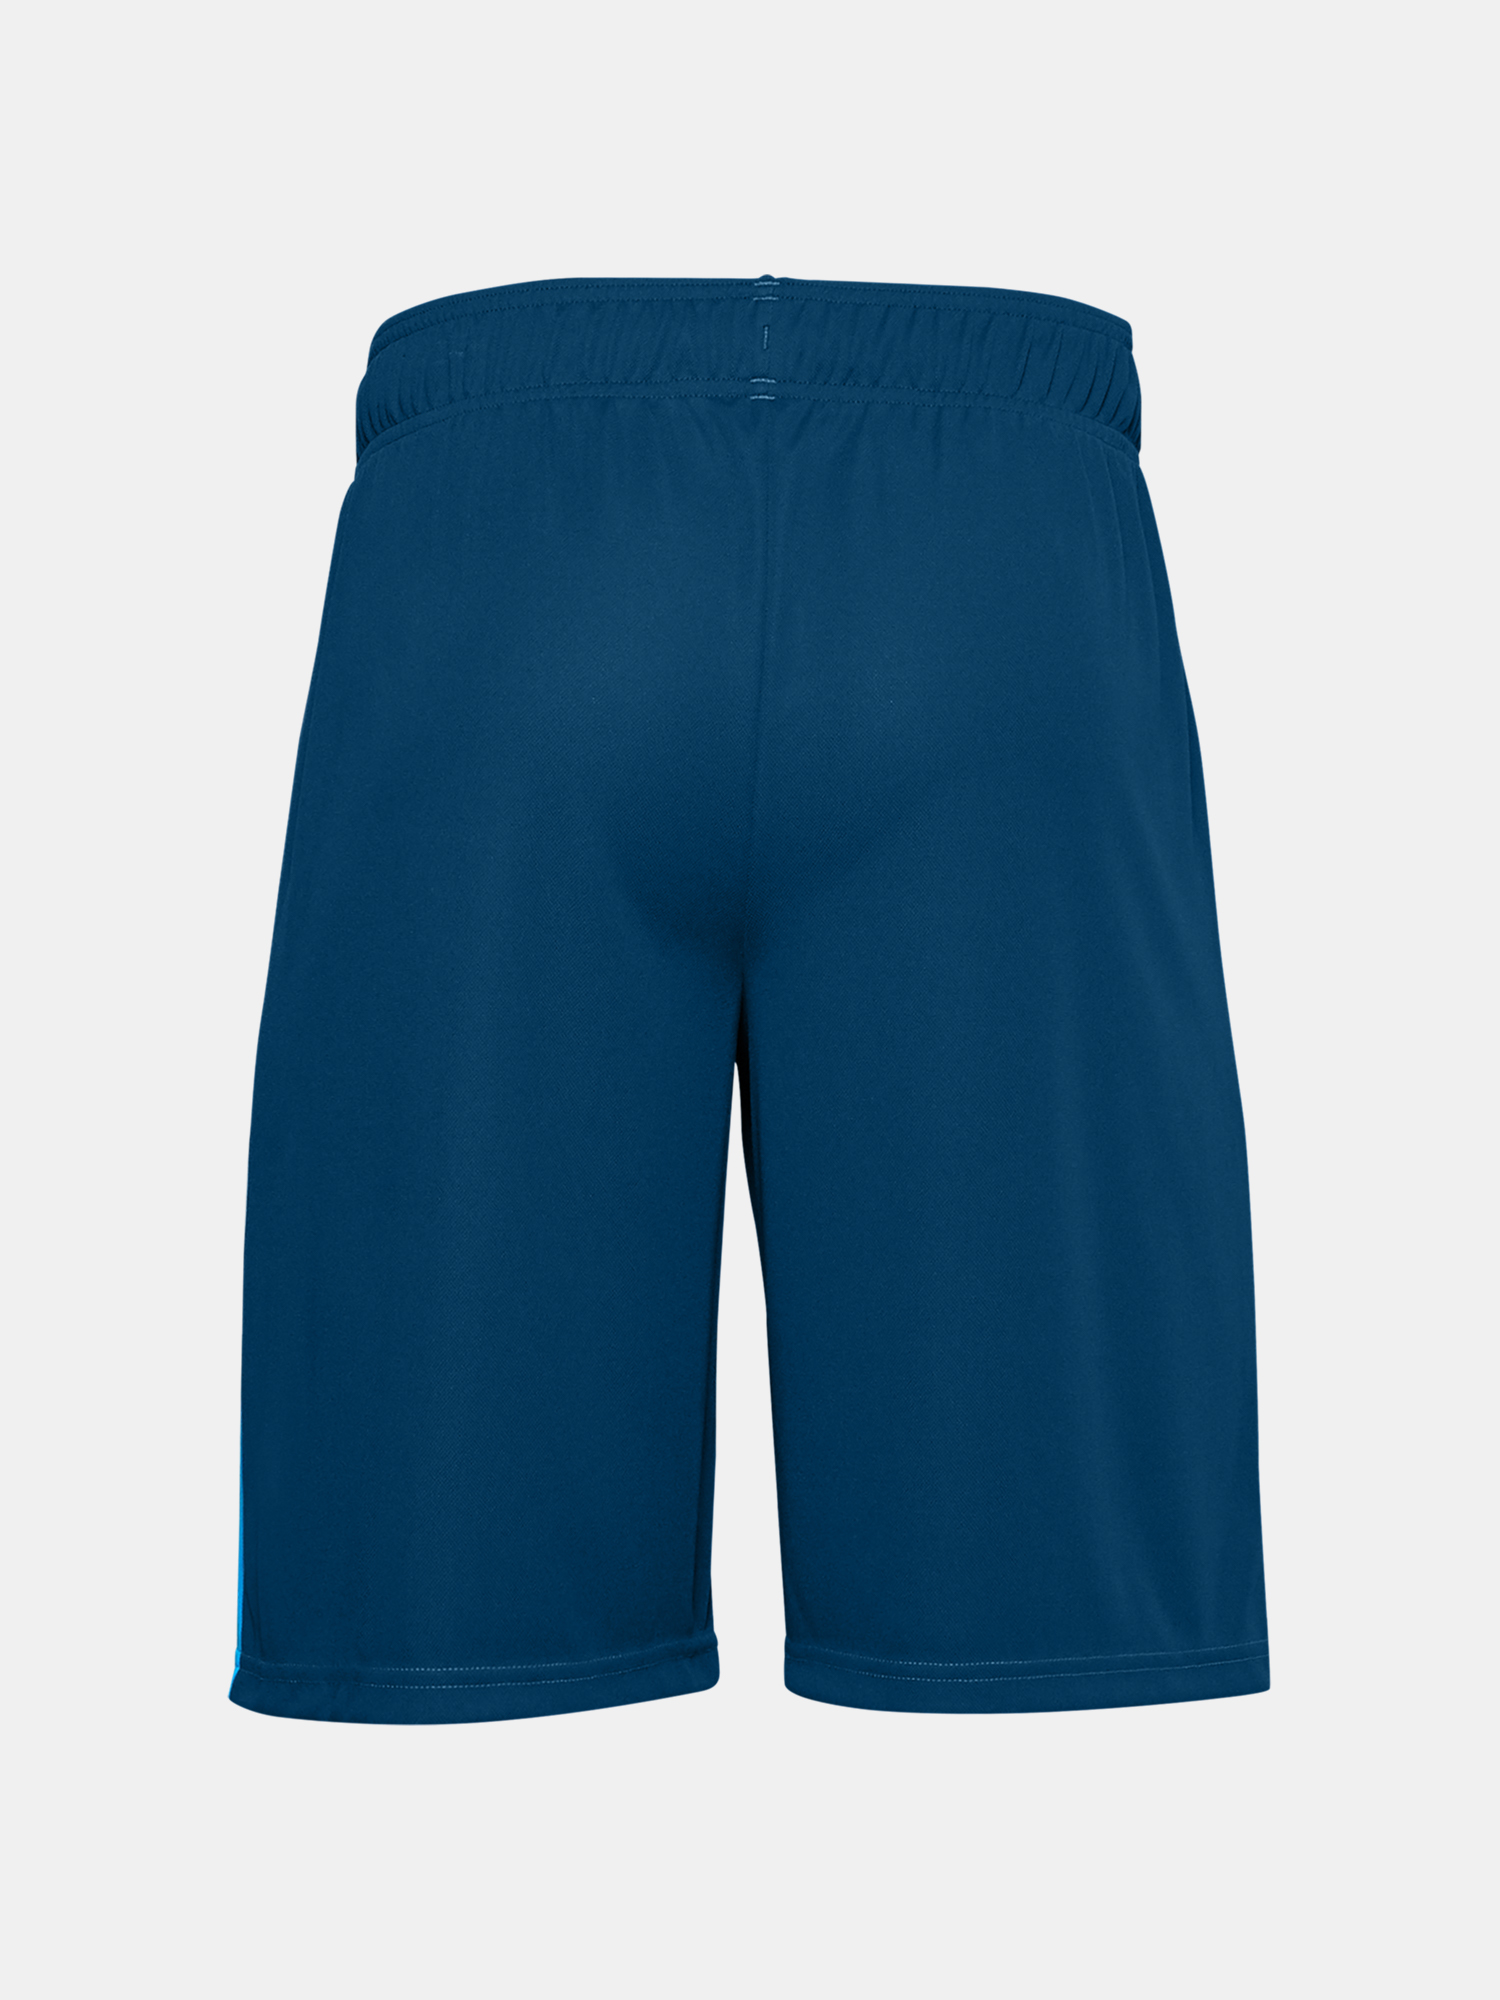 Kraťasy Under Armour Baseline 10IN Short-BLU (4)